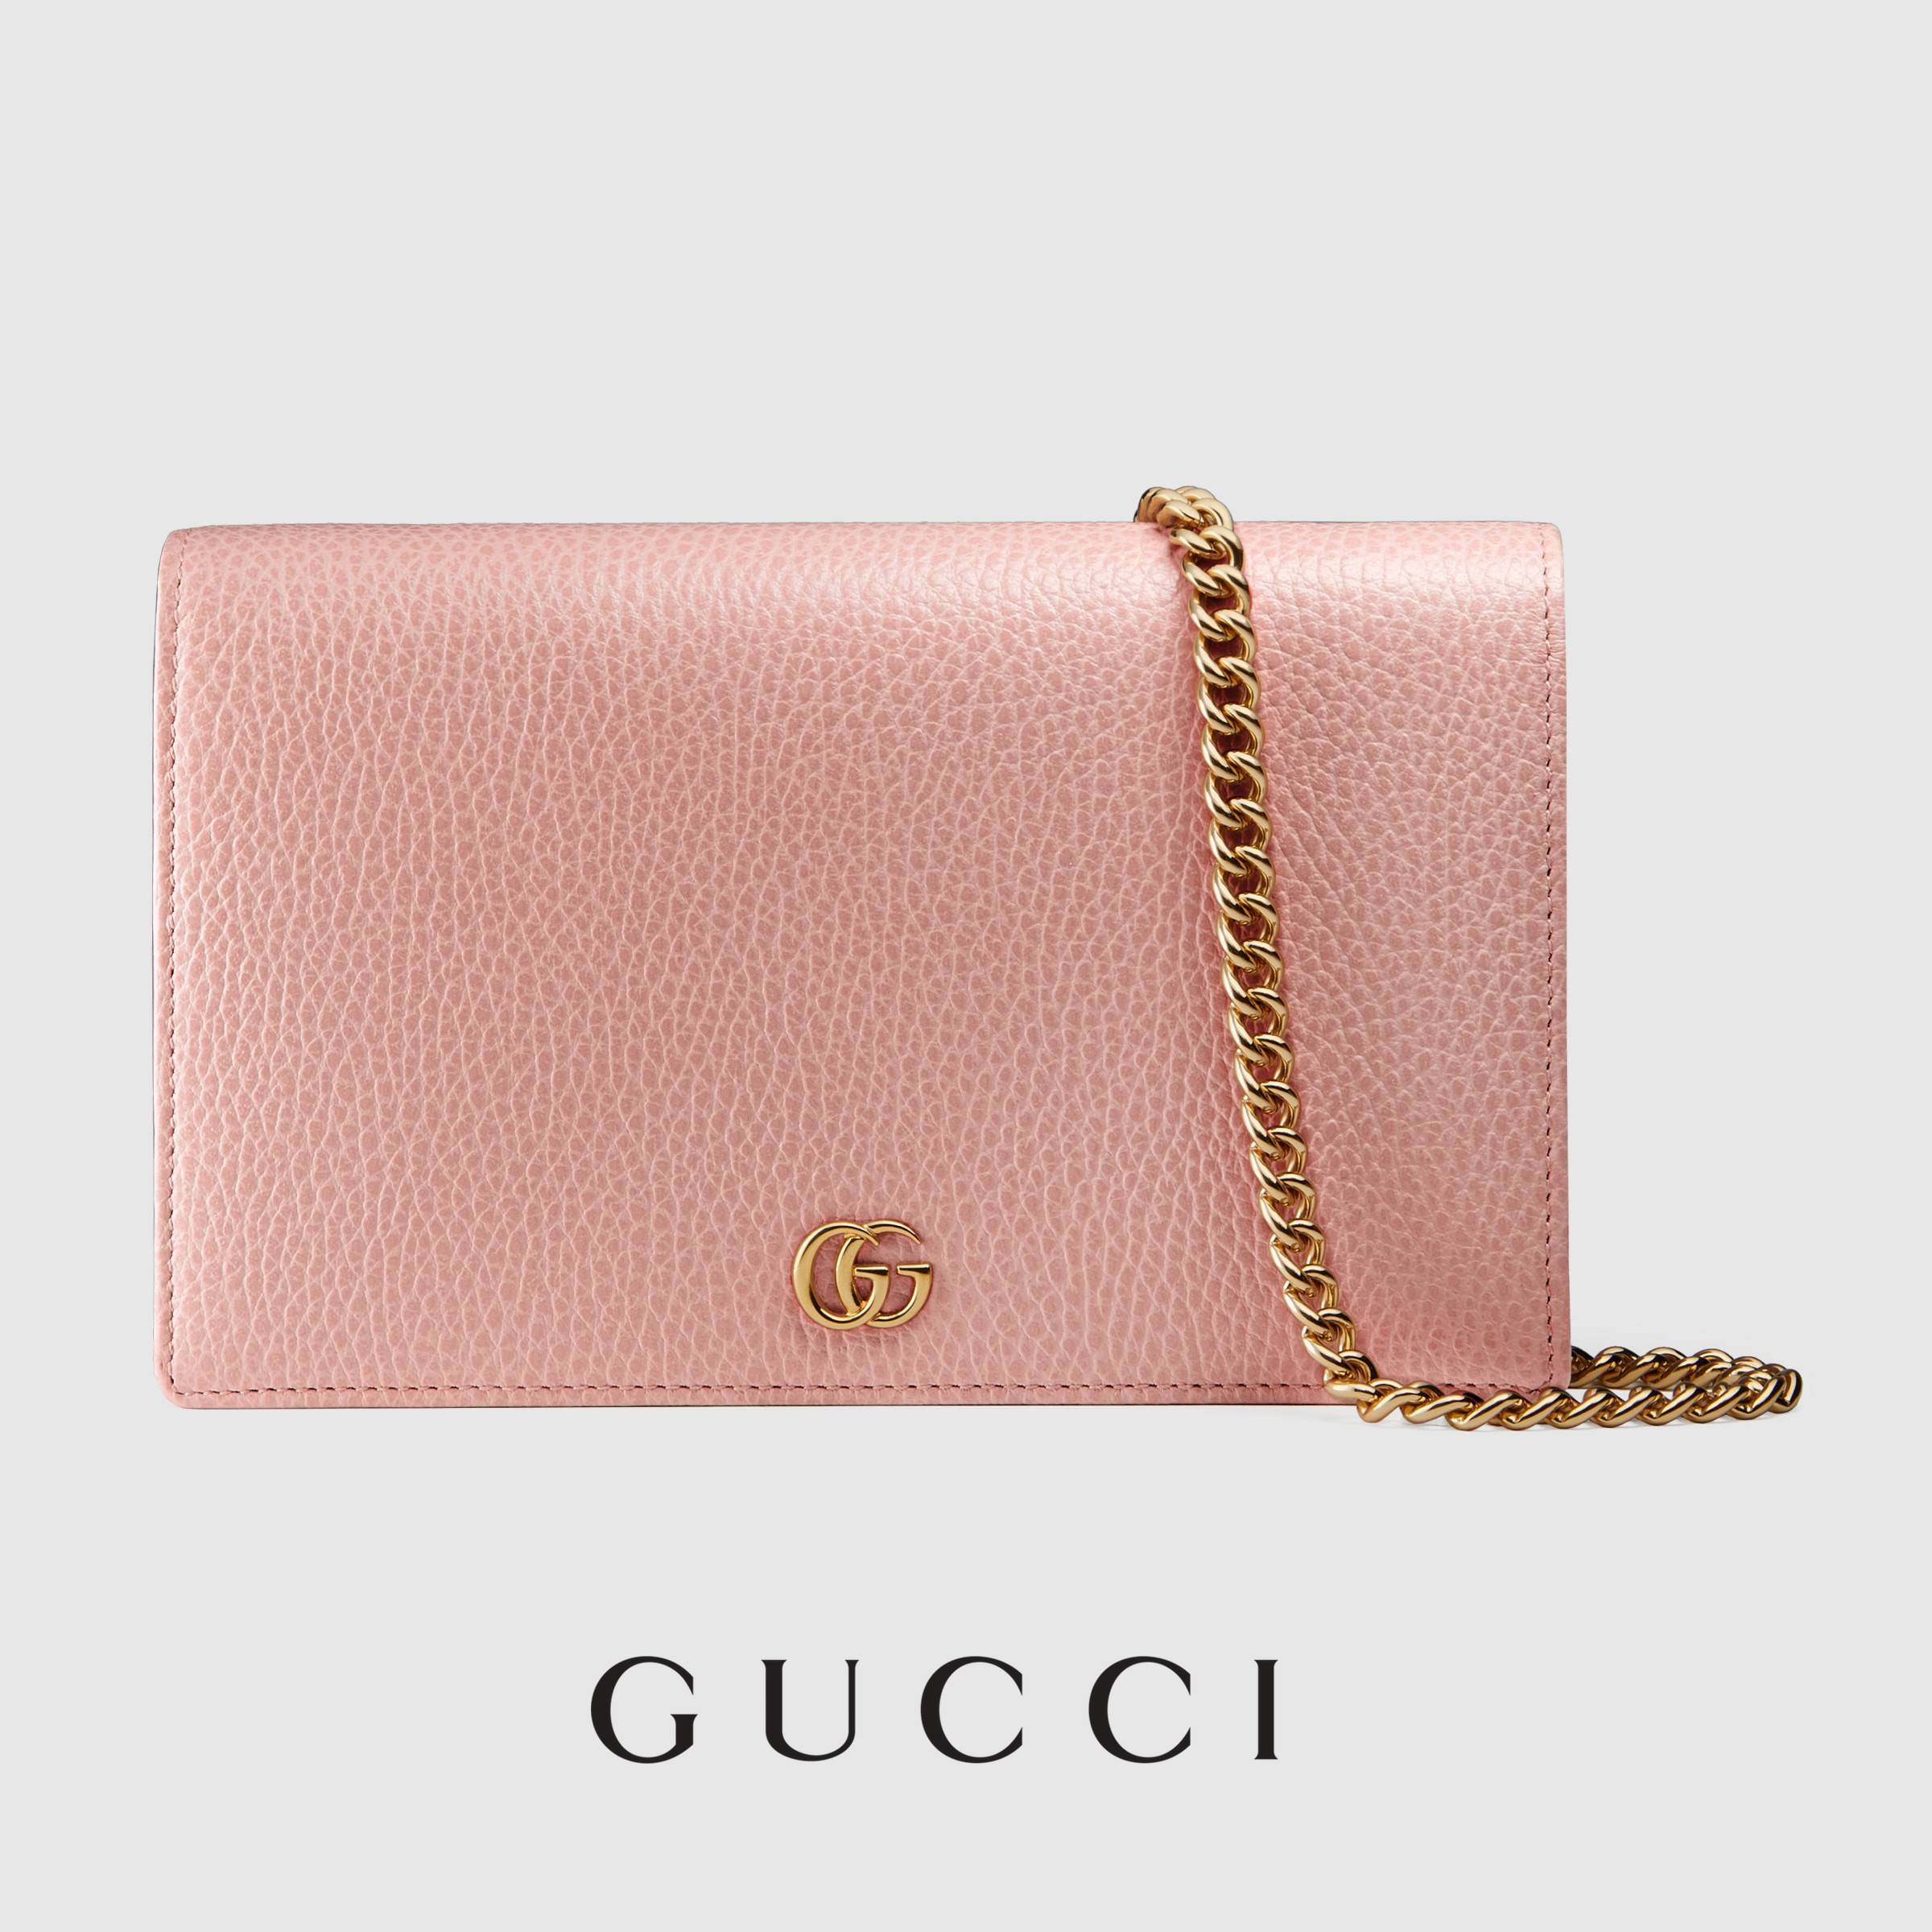 ■GUCCI■GG Marmont レザー ミニ チェーンバッグ ピンク